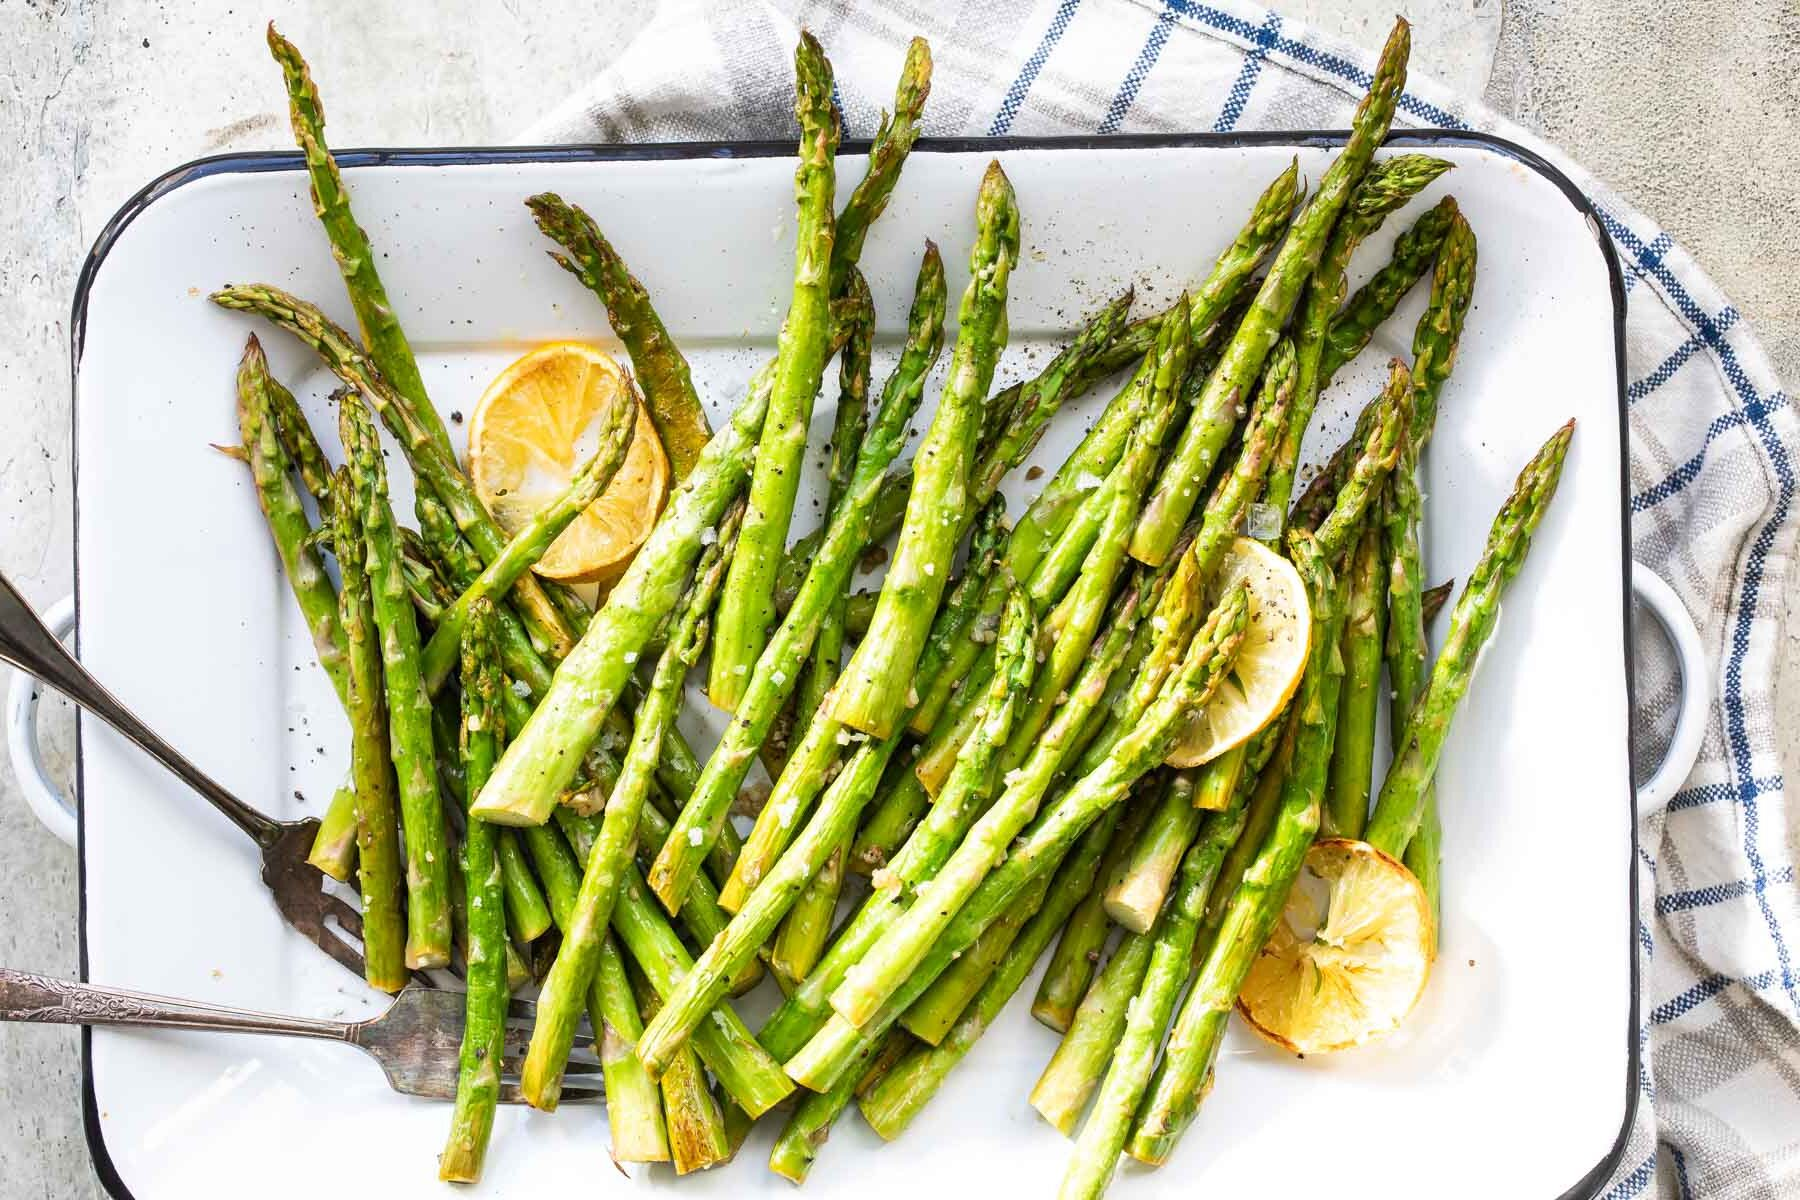 Roasted asparagus on a rimmed baking sheet with lemon slices.